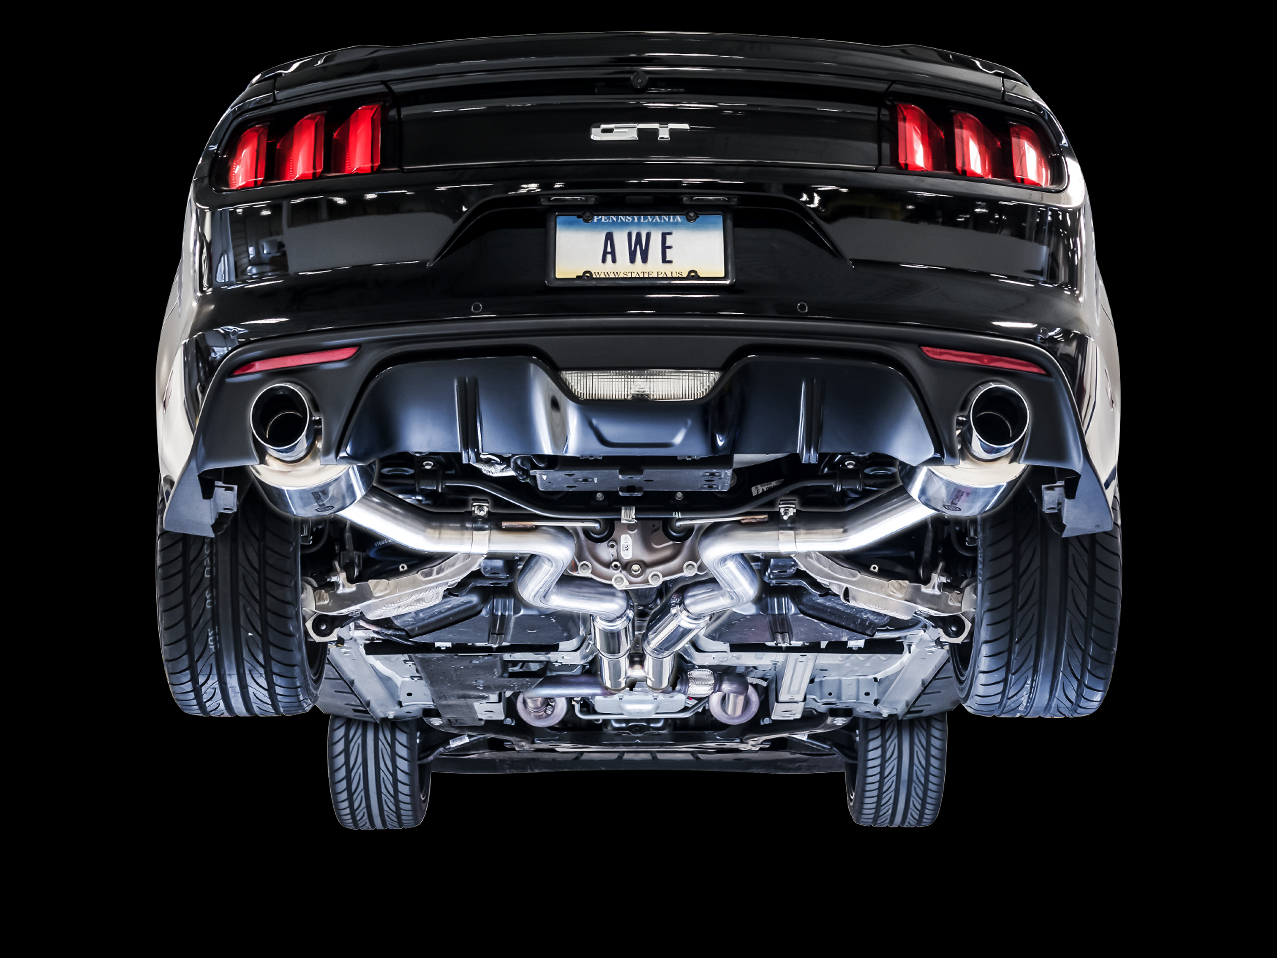 awe 2015 2017 ford mustang gt touring edition cat back exhaust dual tip